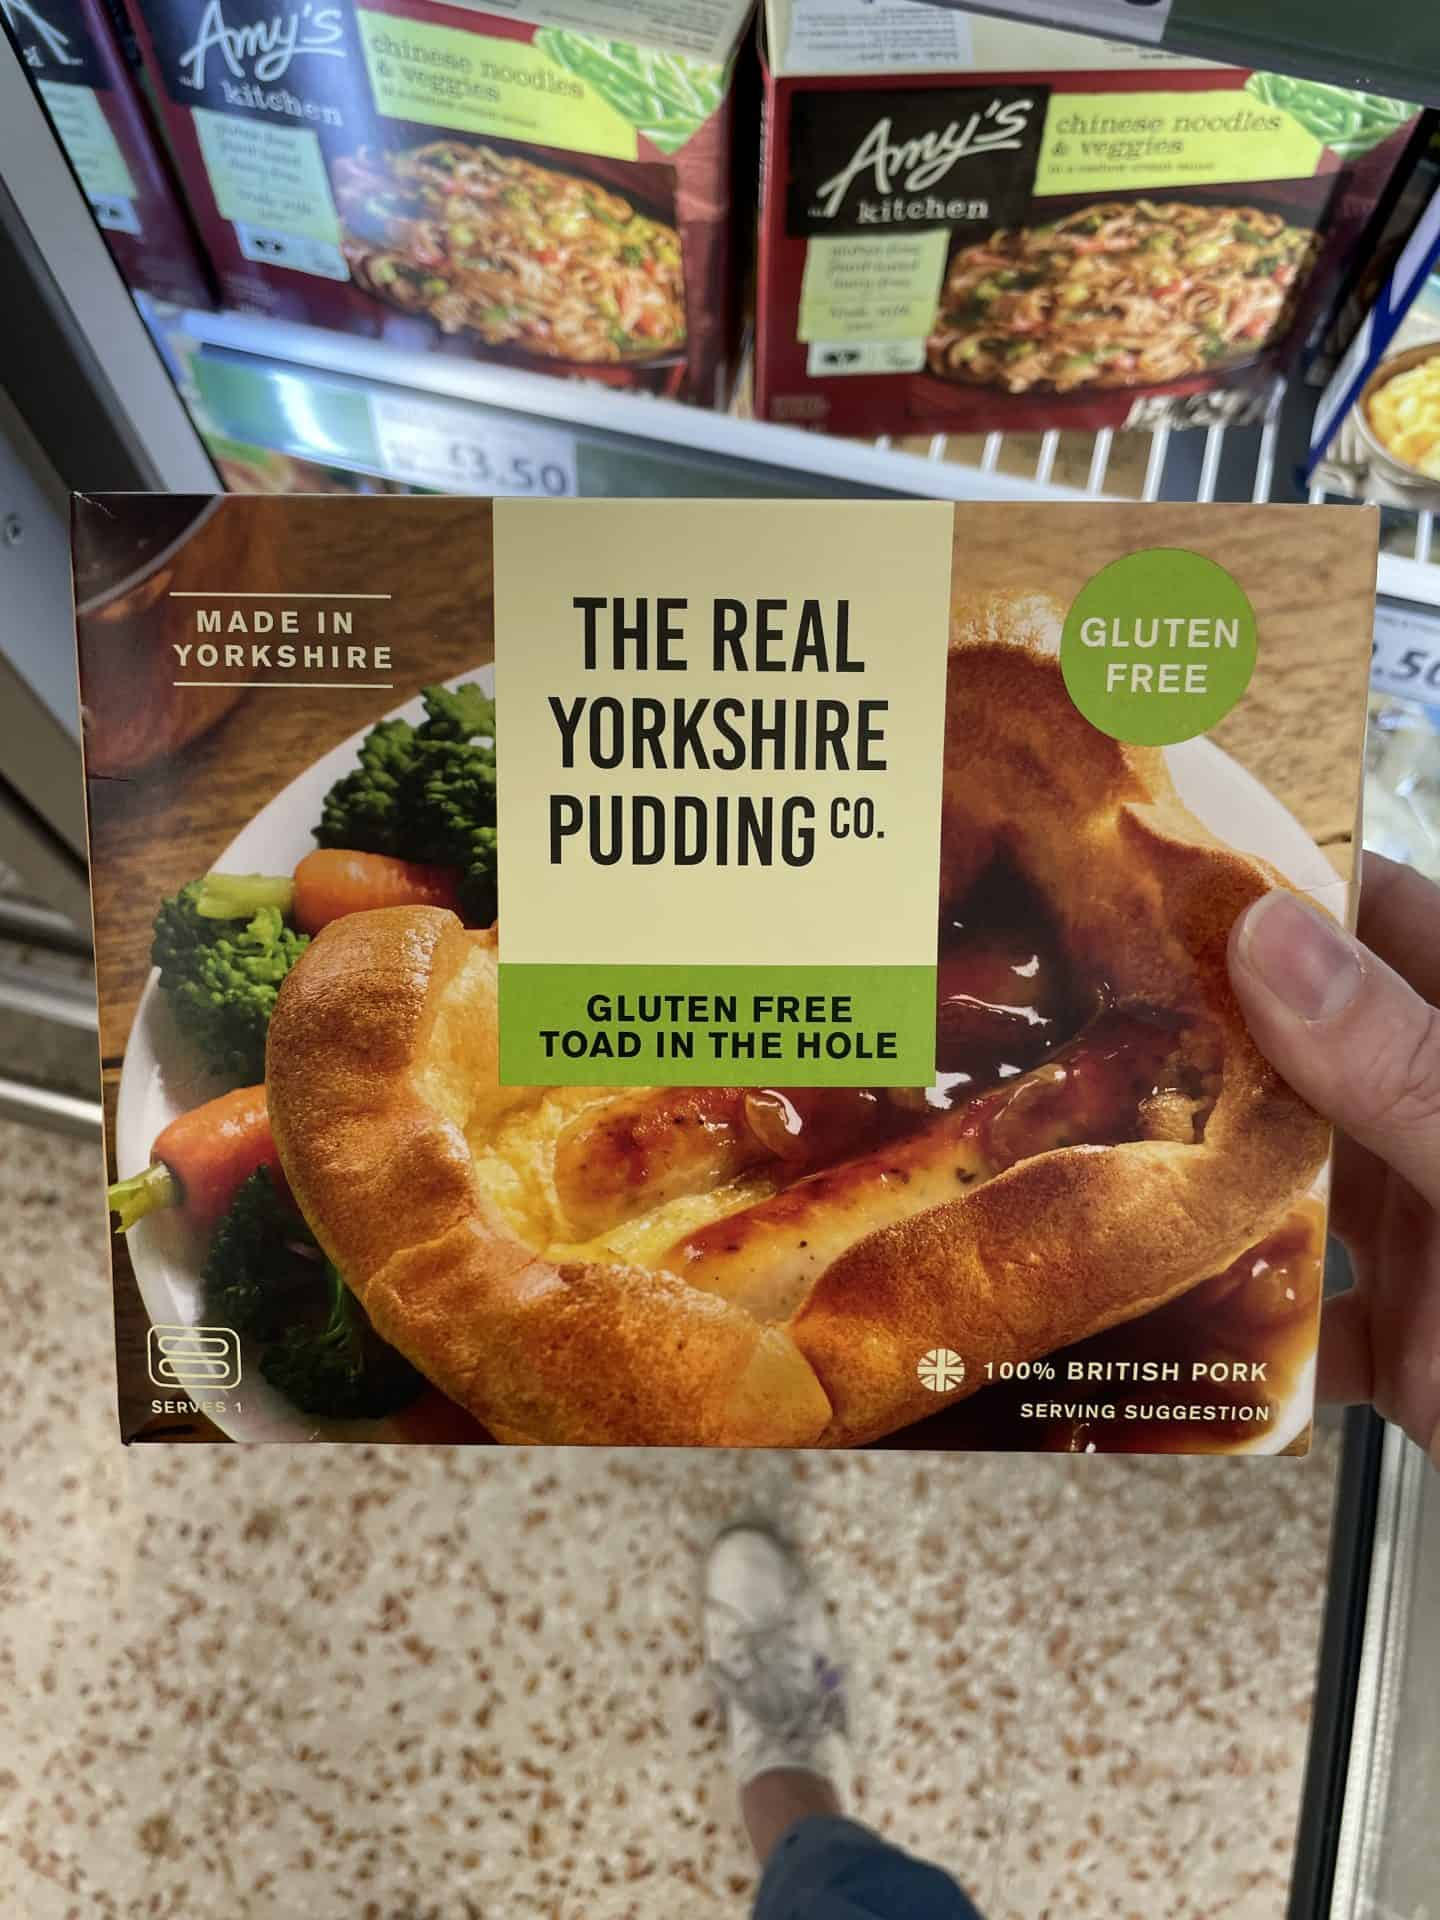 the real yorkshire pudding co toad in the hole